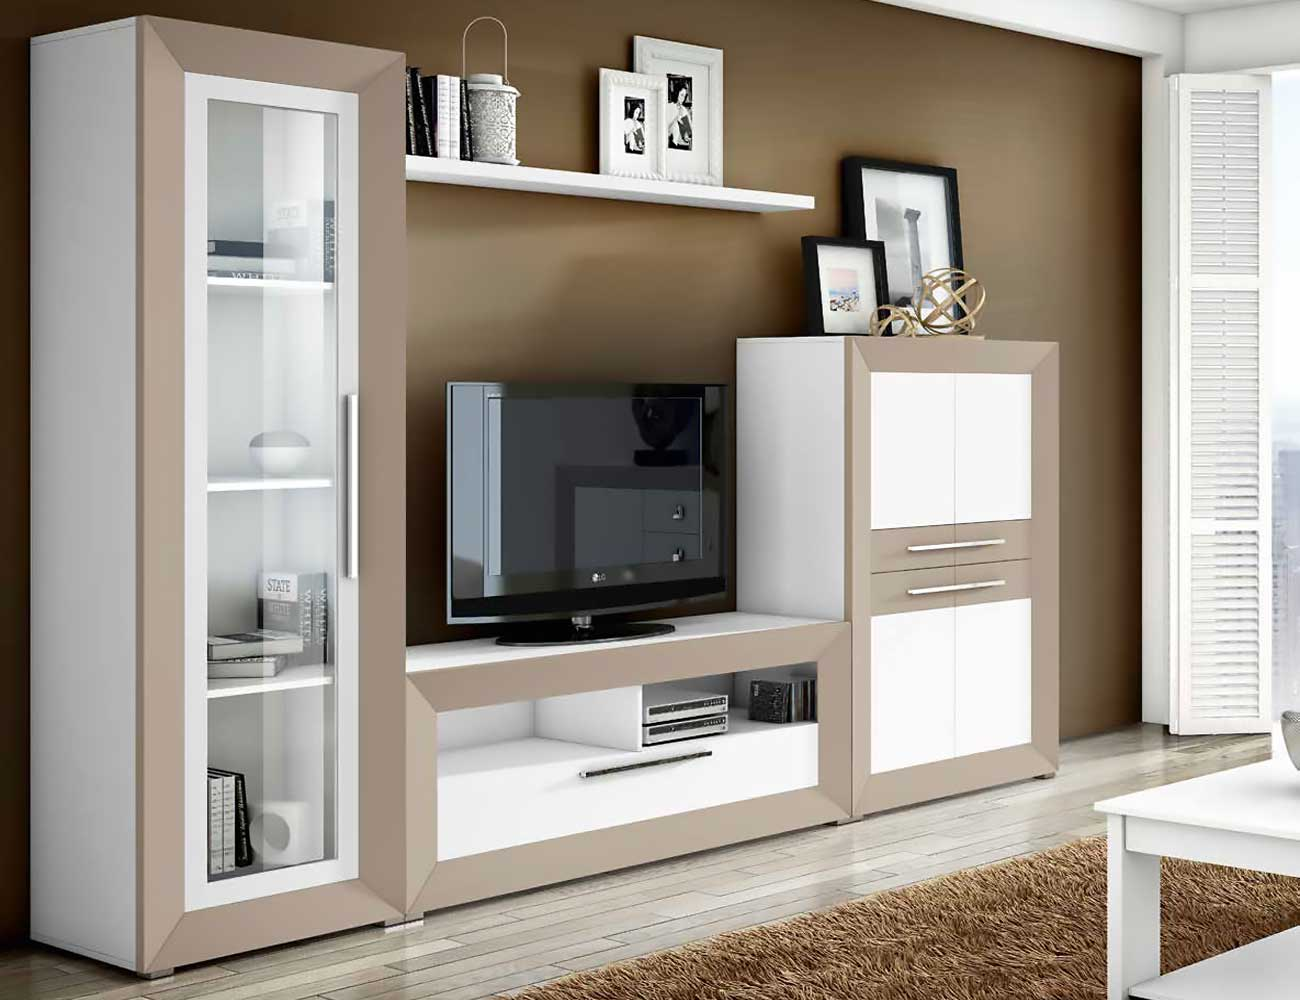 Mueble de sal n moderno blanco con vis n 2428 factory for Muebles de salon de madera modernos